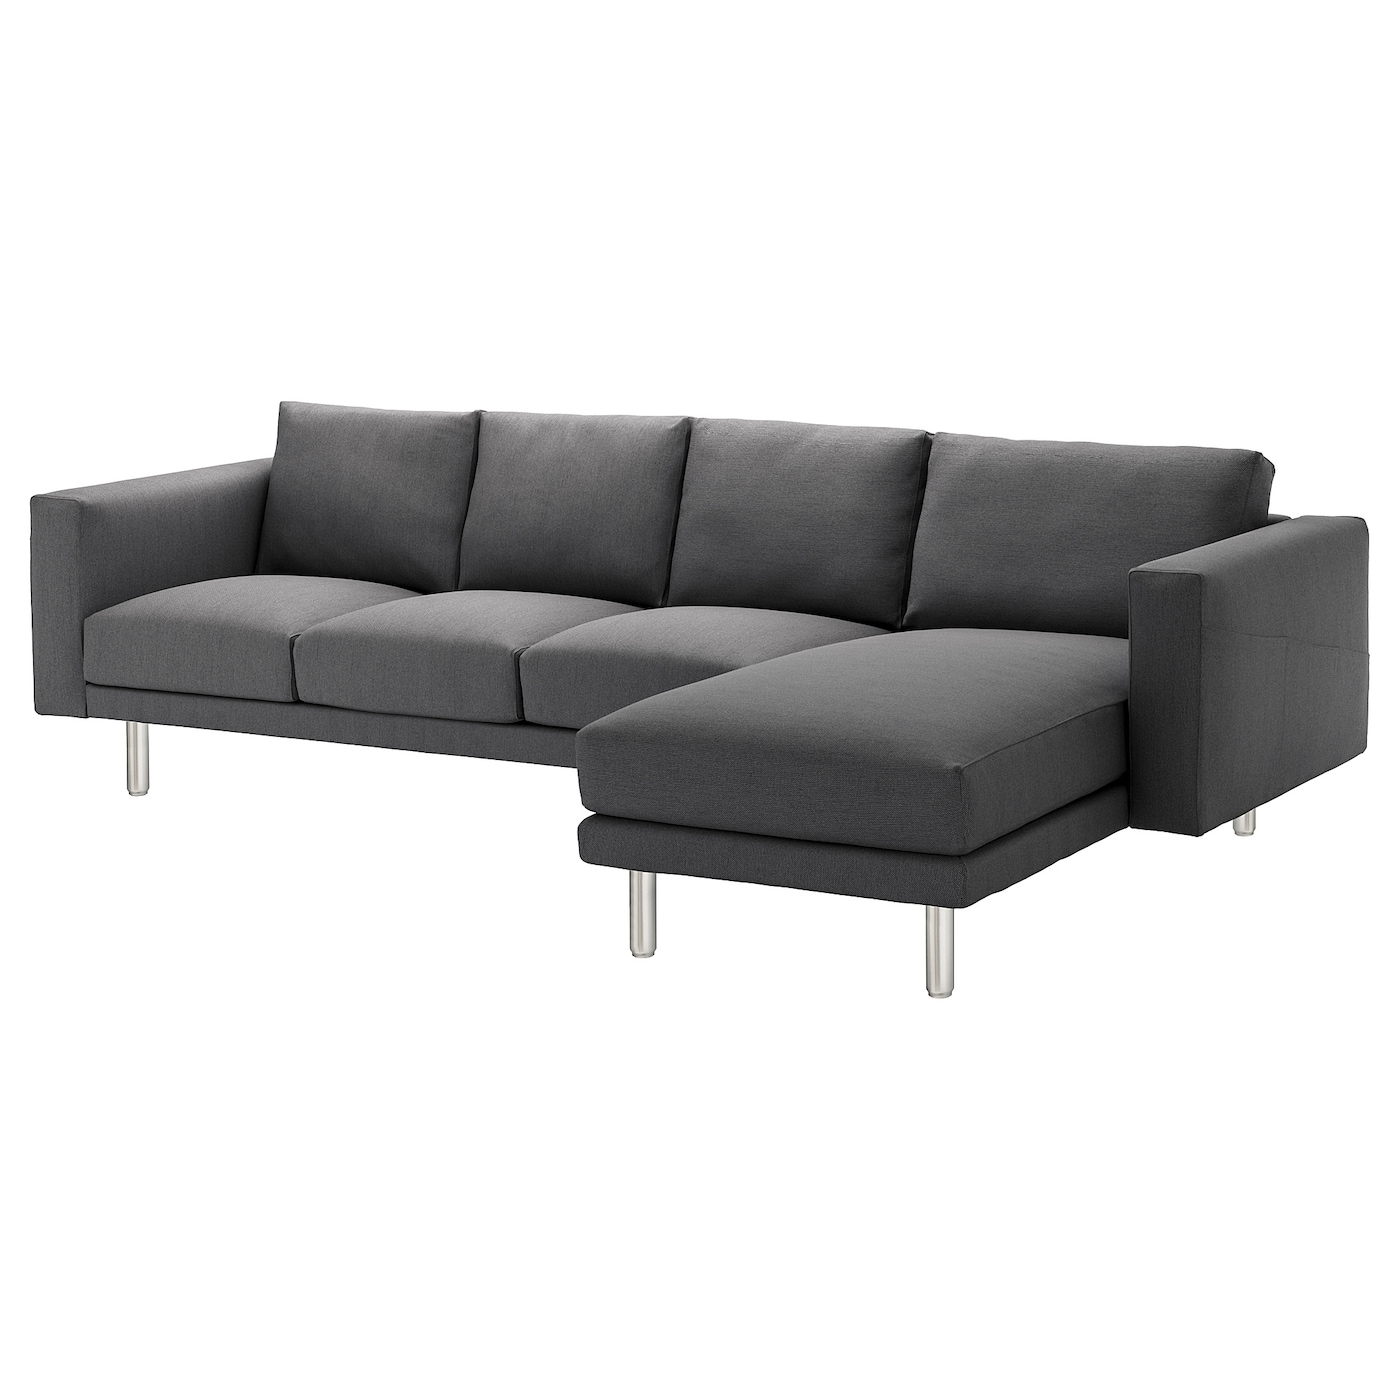 norsborg 4 seat sofa with chaise longue finnsta dark grey metal ikea. Black Bedroom Furniture Sets. Home Design Ideas